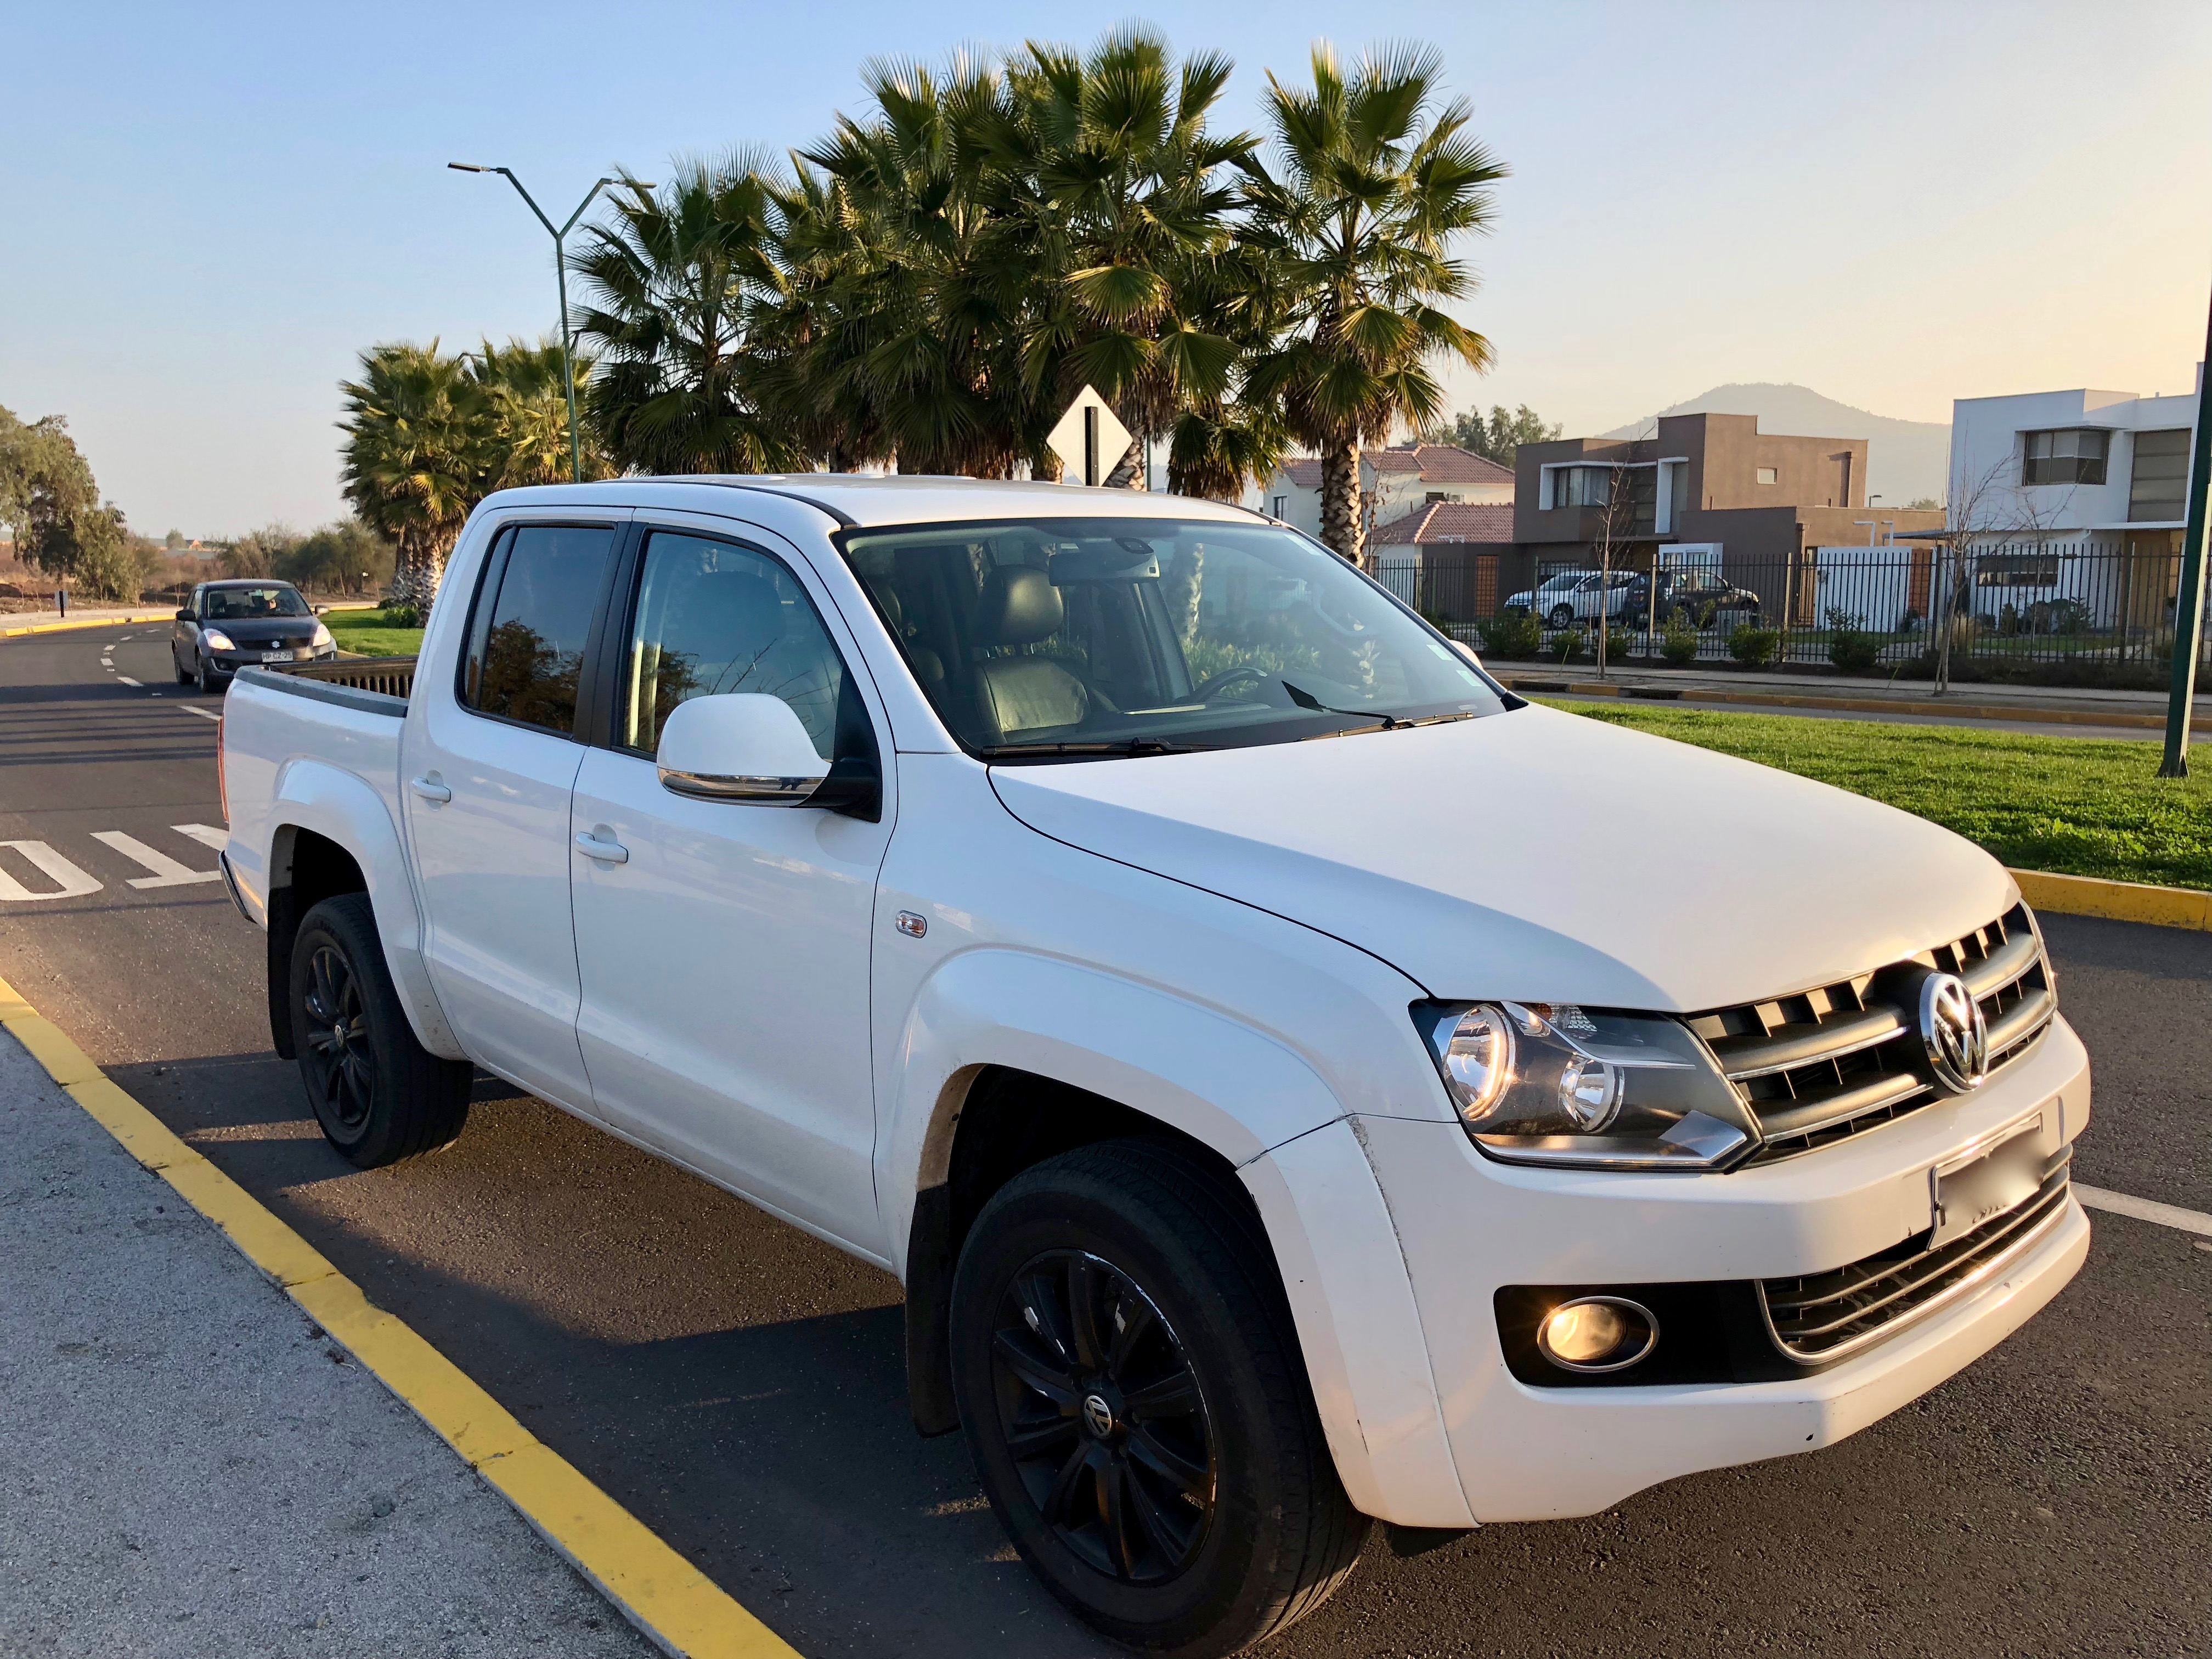 Volkswagen Amarok VW Amarok Highline AT 8 4WD FULL con CUE año 2011